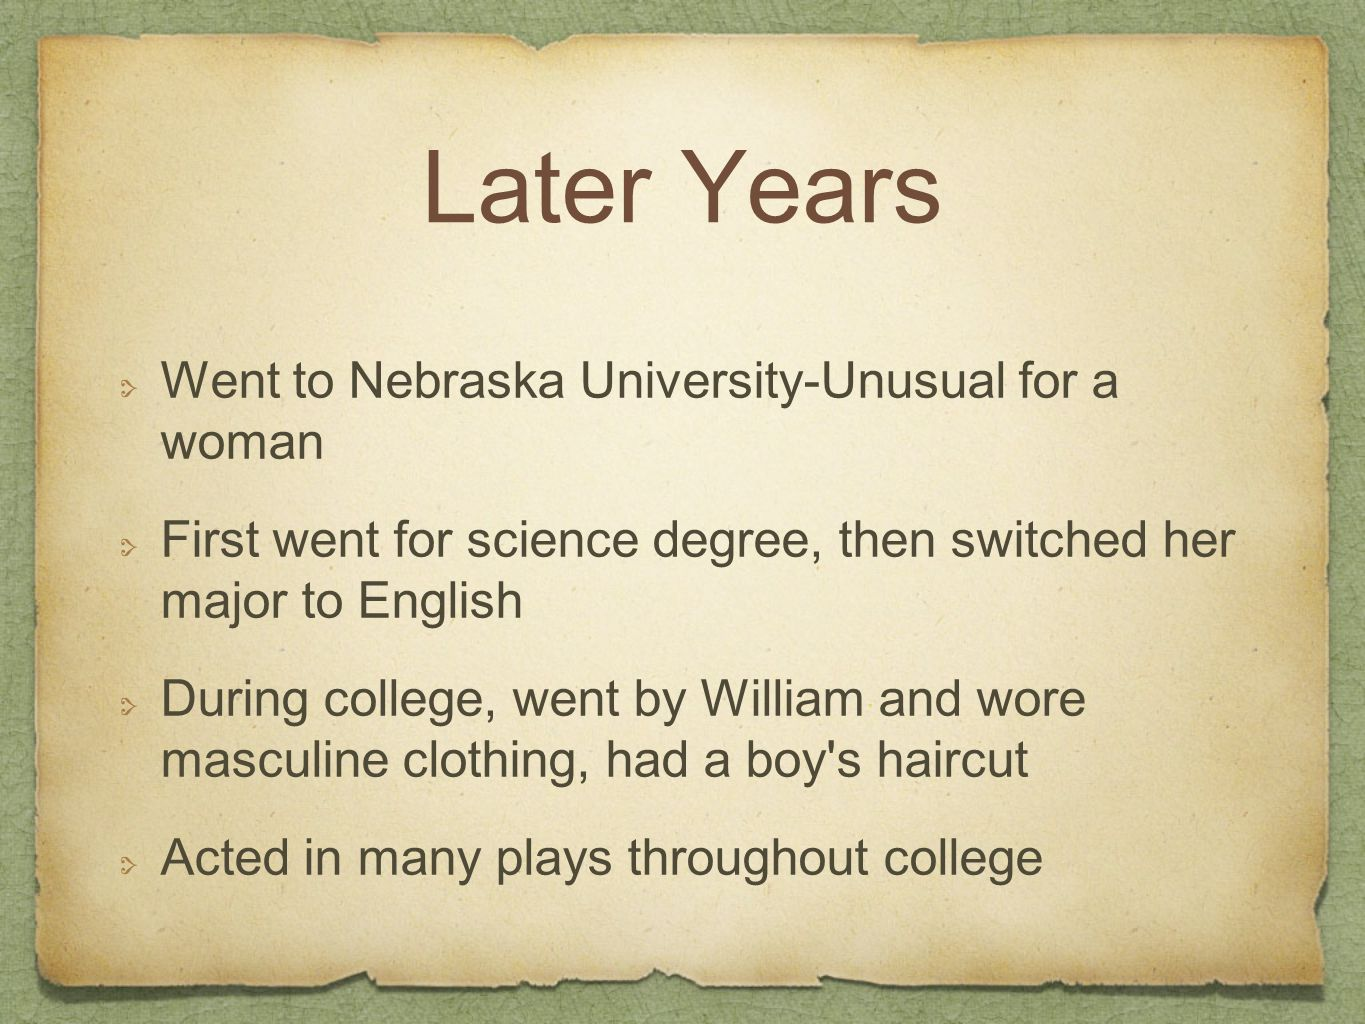 Later Years Went to Nebraska University-Unusual for a woman First went for science degree, then switched her major to English During college, went by William and wore masculine clothing, had a boy s haircut Acted in many plays throughout college